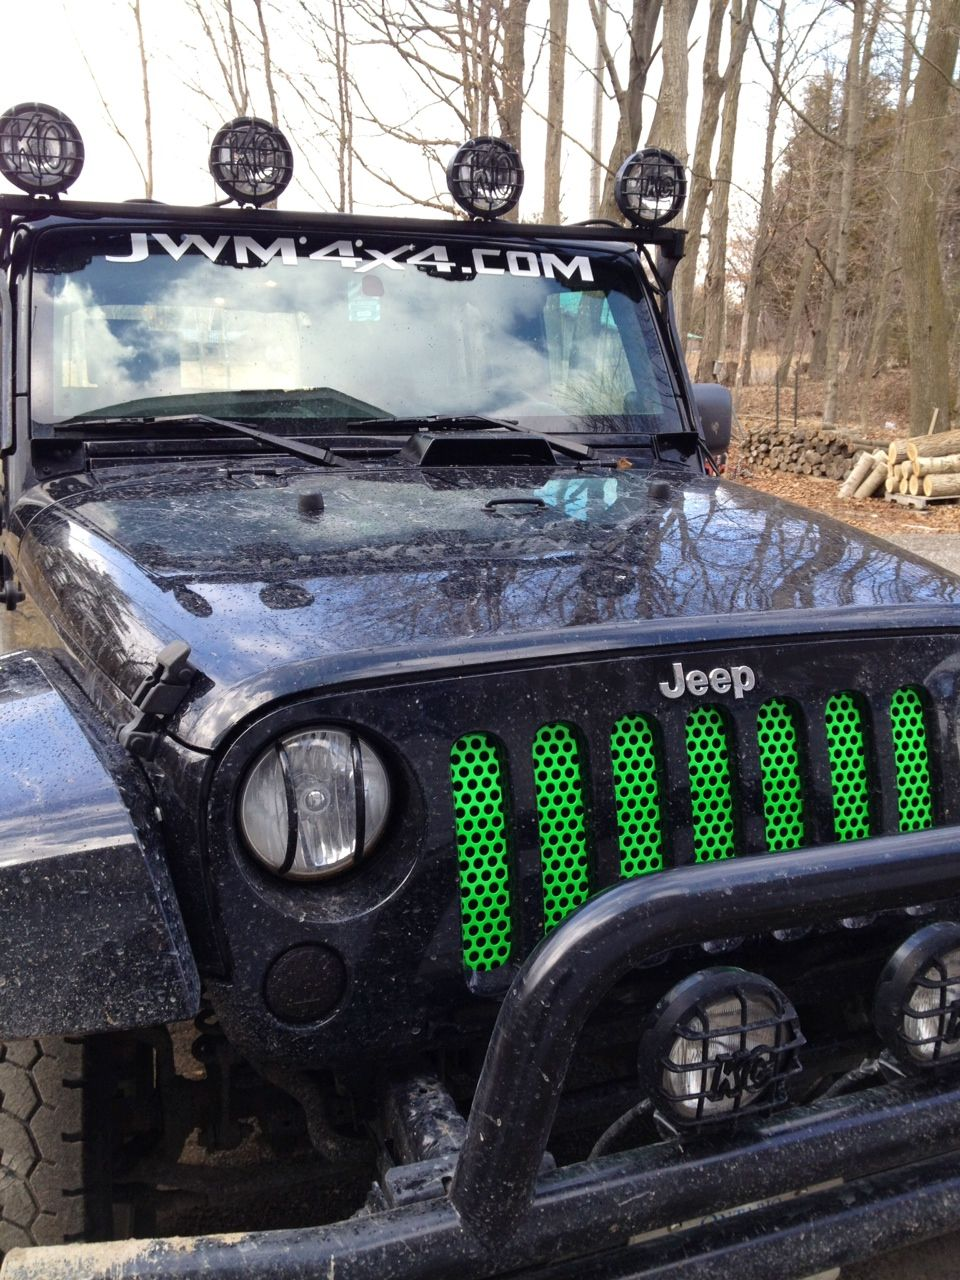 Home Page Jwm 4x4jwm 4 4 Jeep Wrangler Protection With Images Green Jeep Wrangler Jeep Wrangler Jeep Wrangler Grill